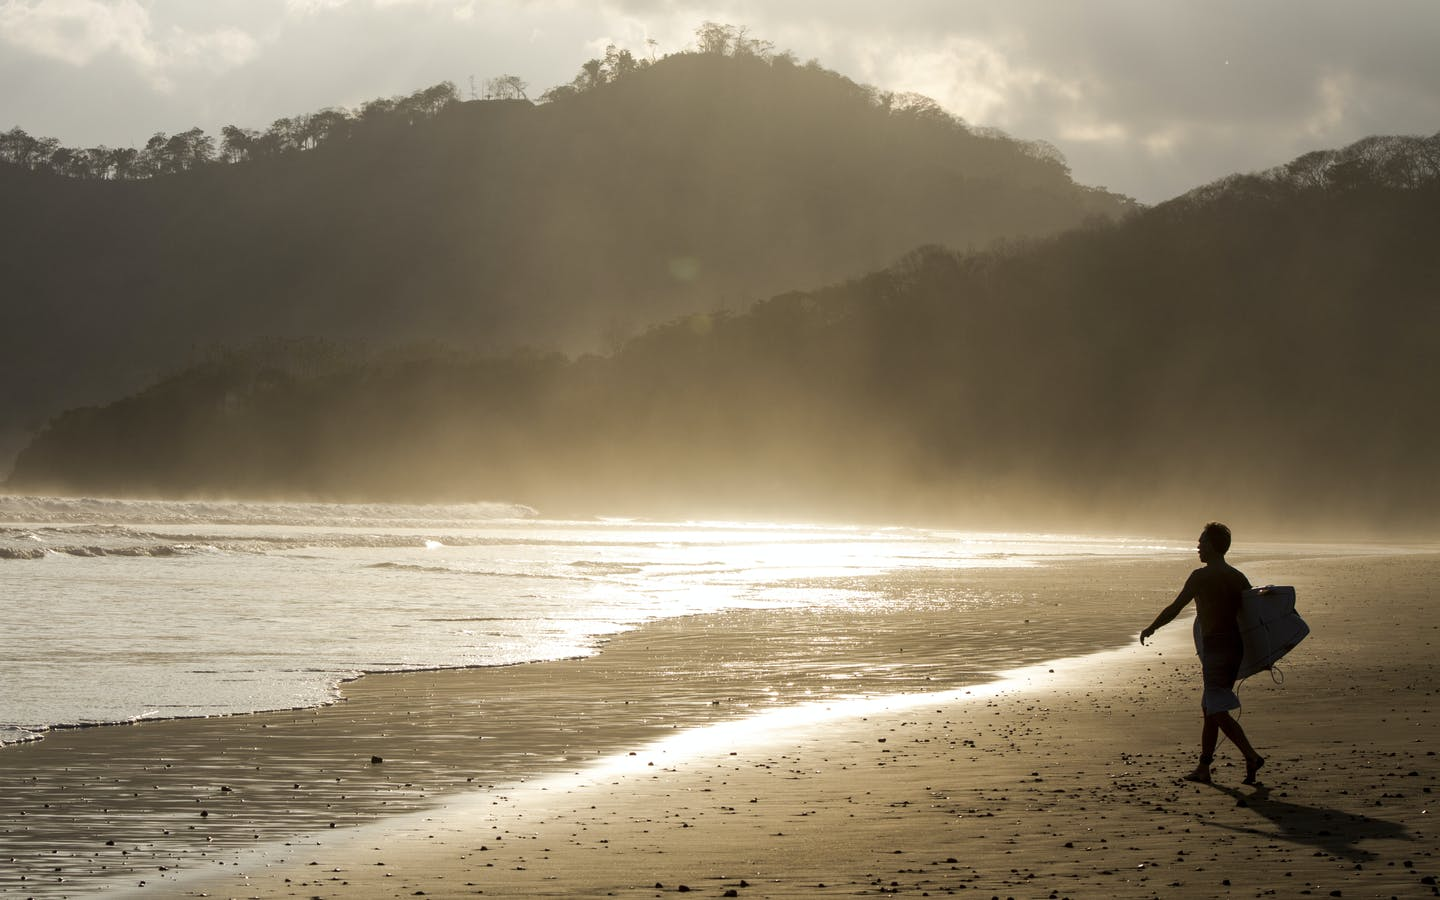 A foreign surfer enjoys the best of Costa Rica's ecotourism possibilities.